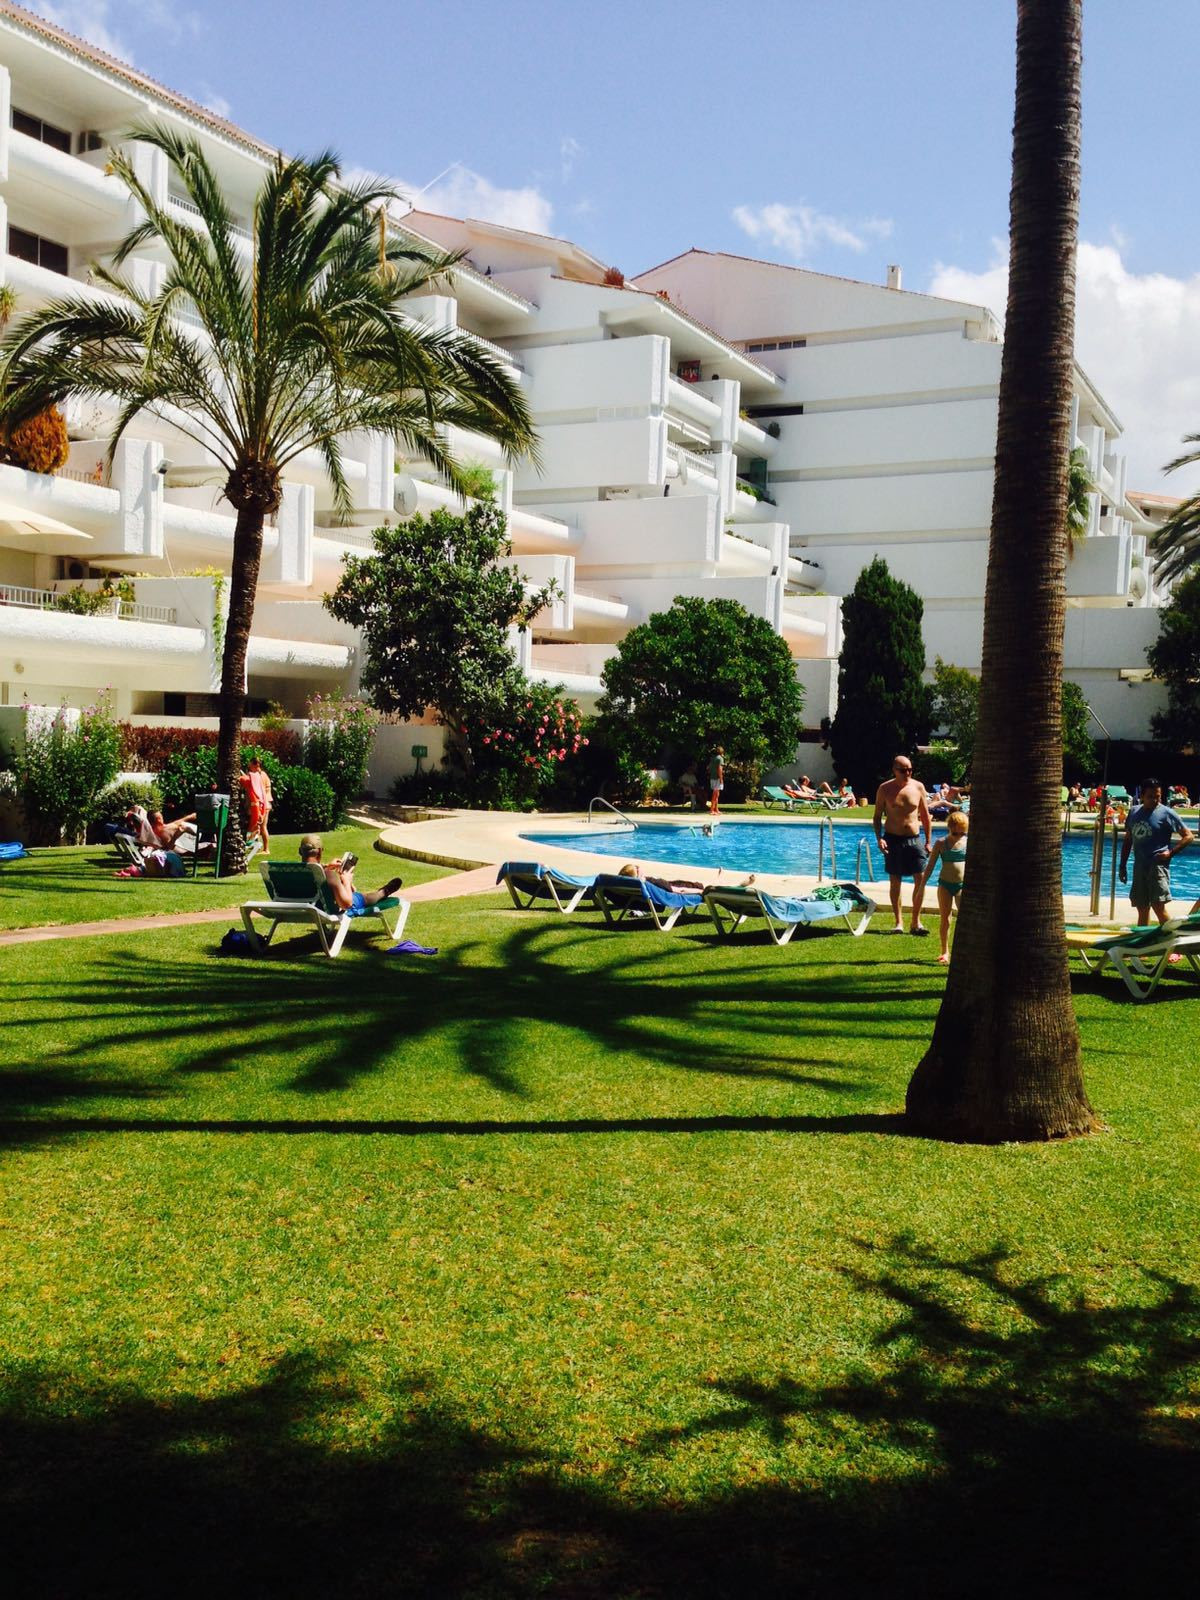 RENTED 1 bedroom apartment next to the beach in a gated complex on the Golden Mile. This complex is ,Spain